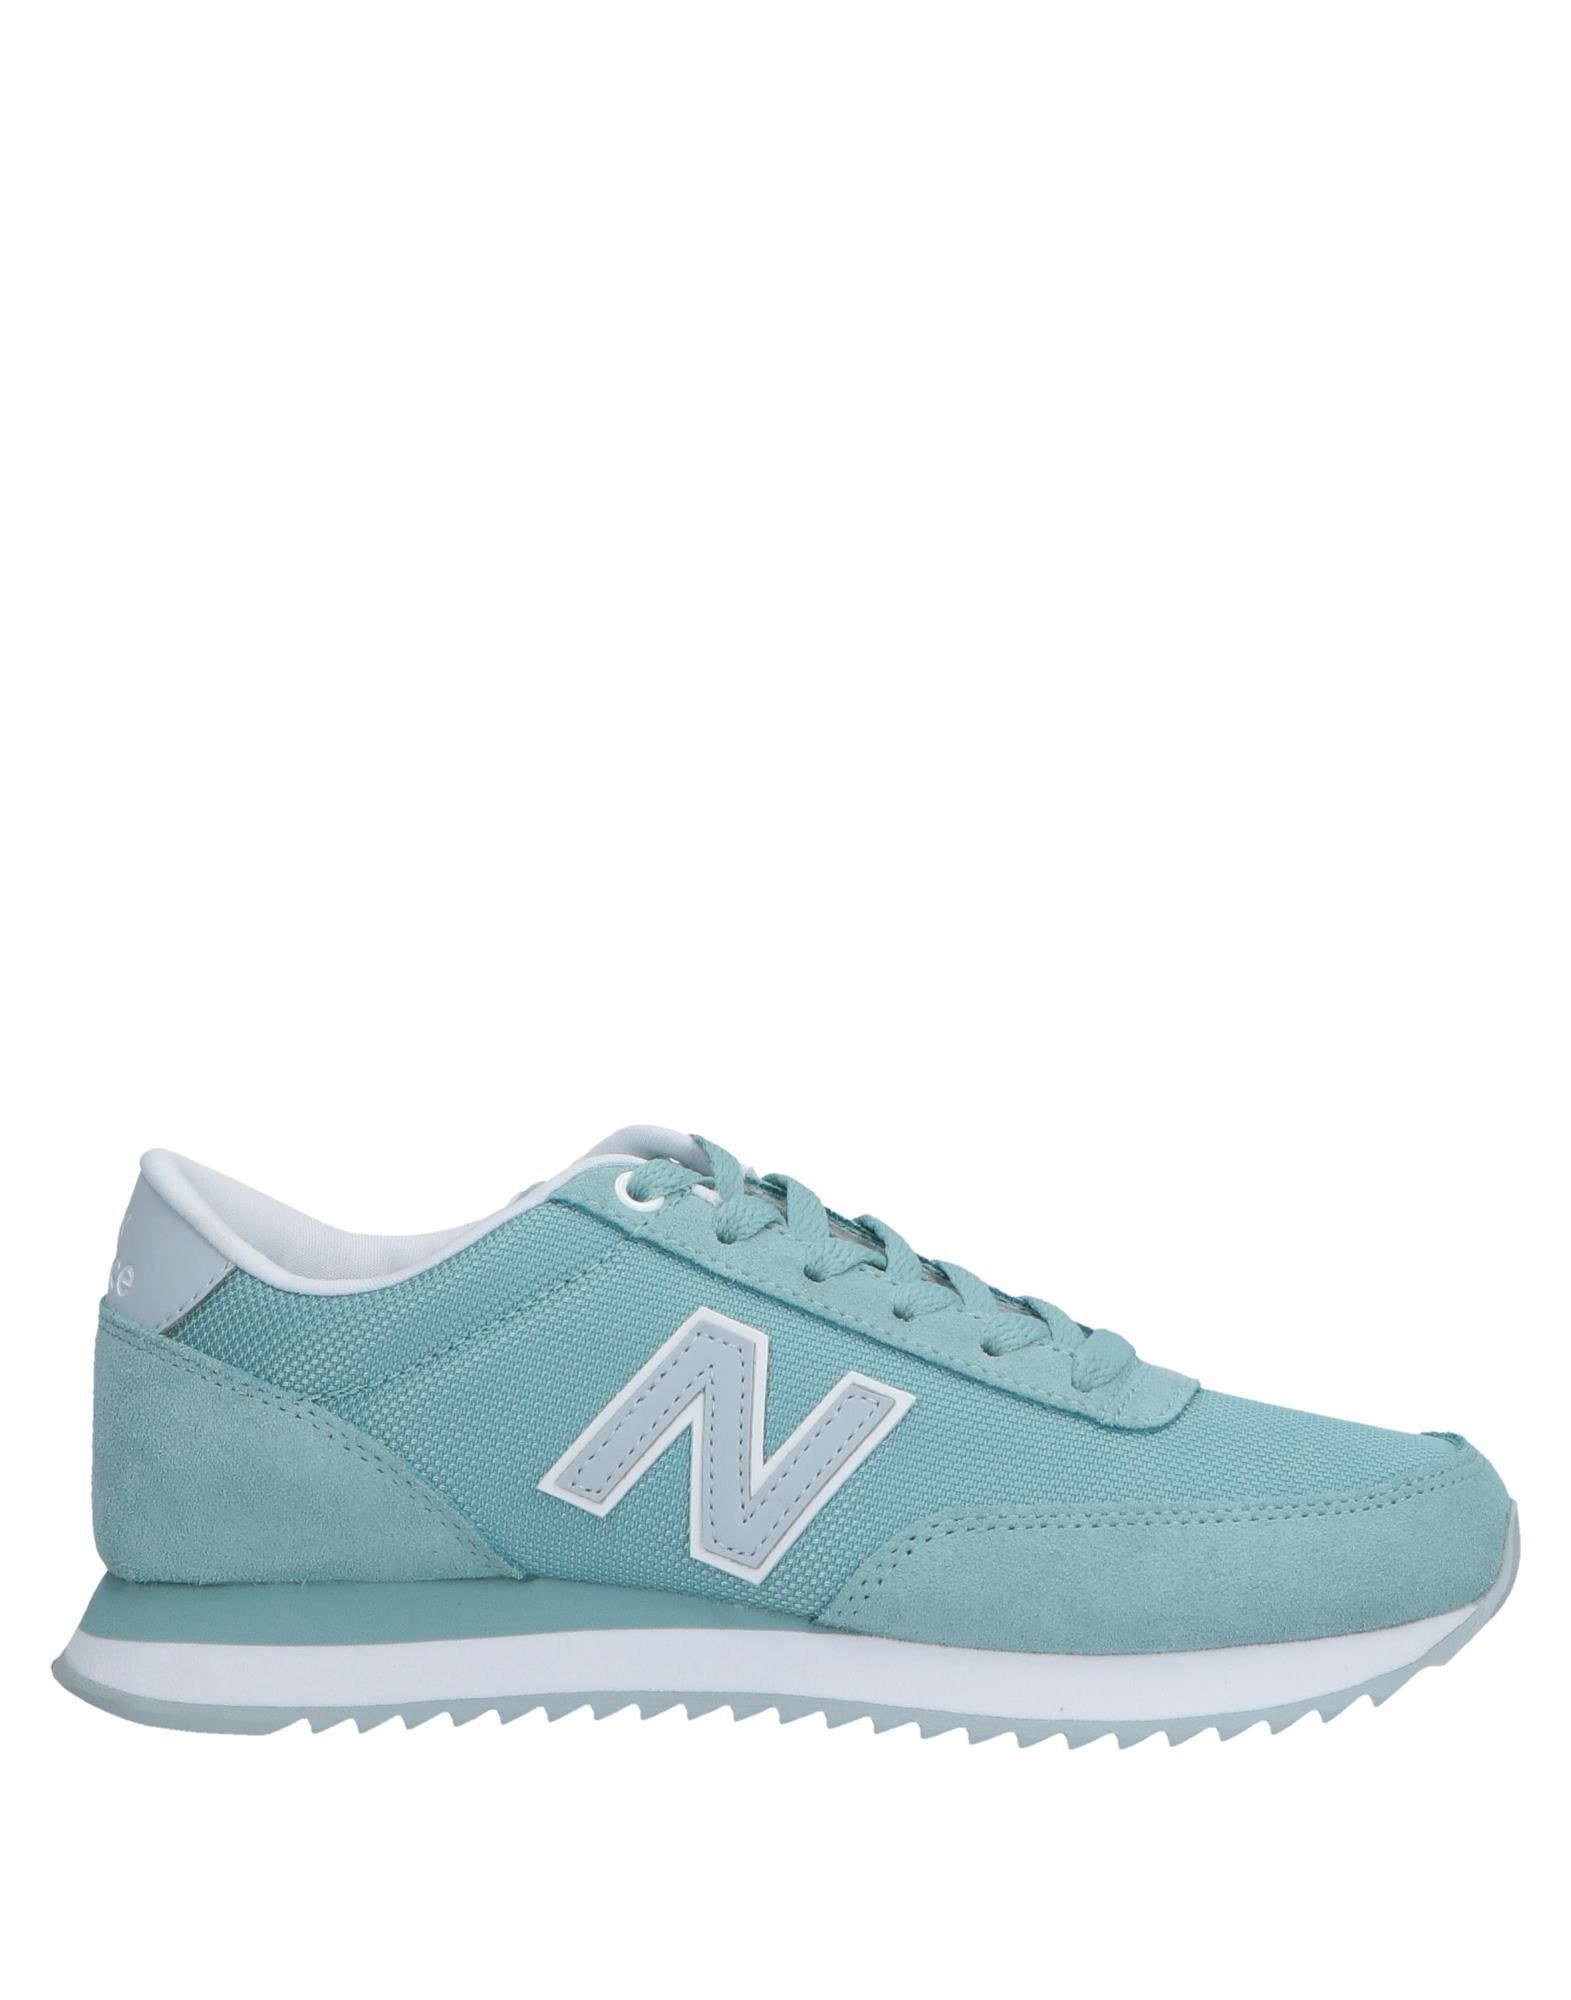 New Balance Sneakers Sneakers Sneakers - Men New Balance Sneakers online on  Canada - 11570431WA 3a1b82